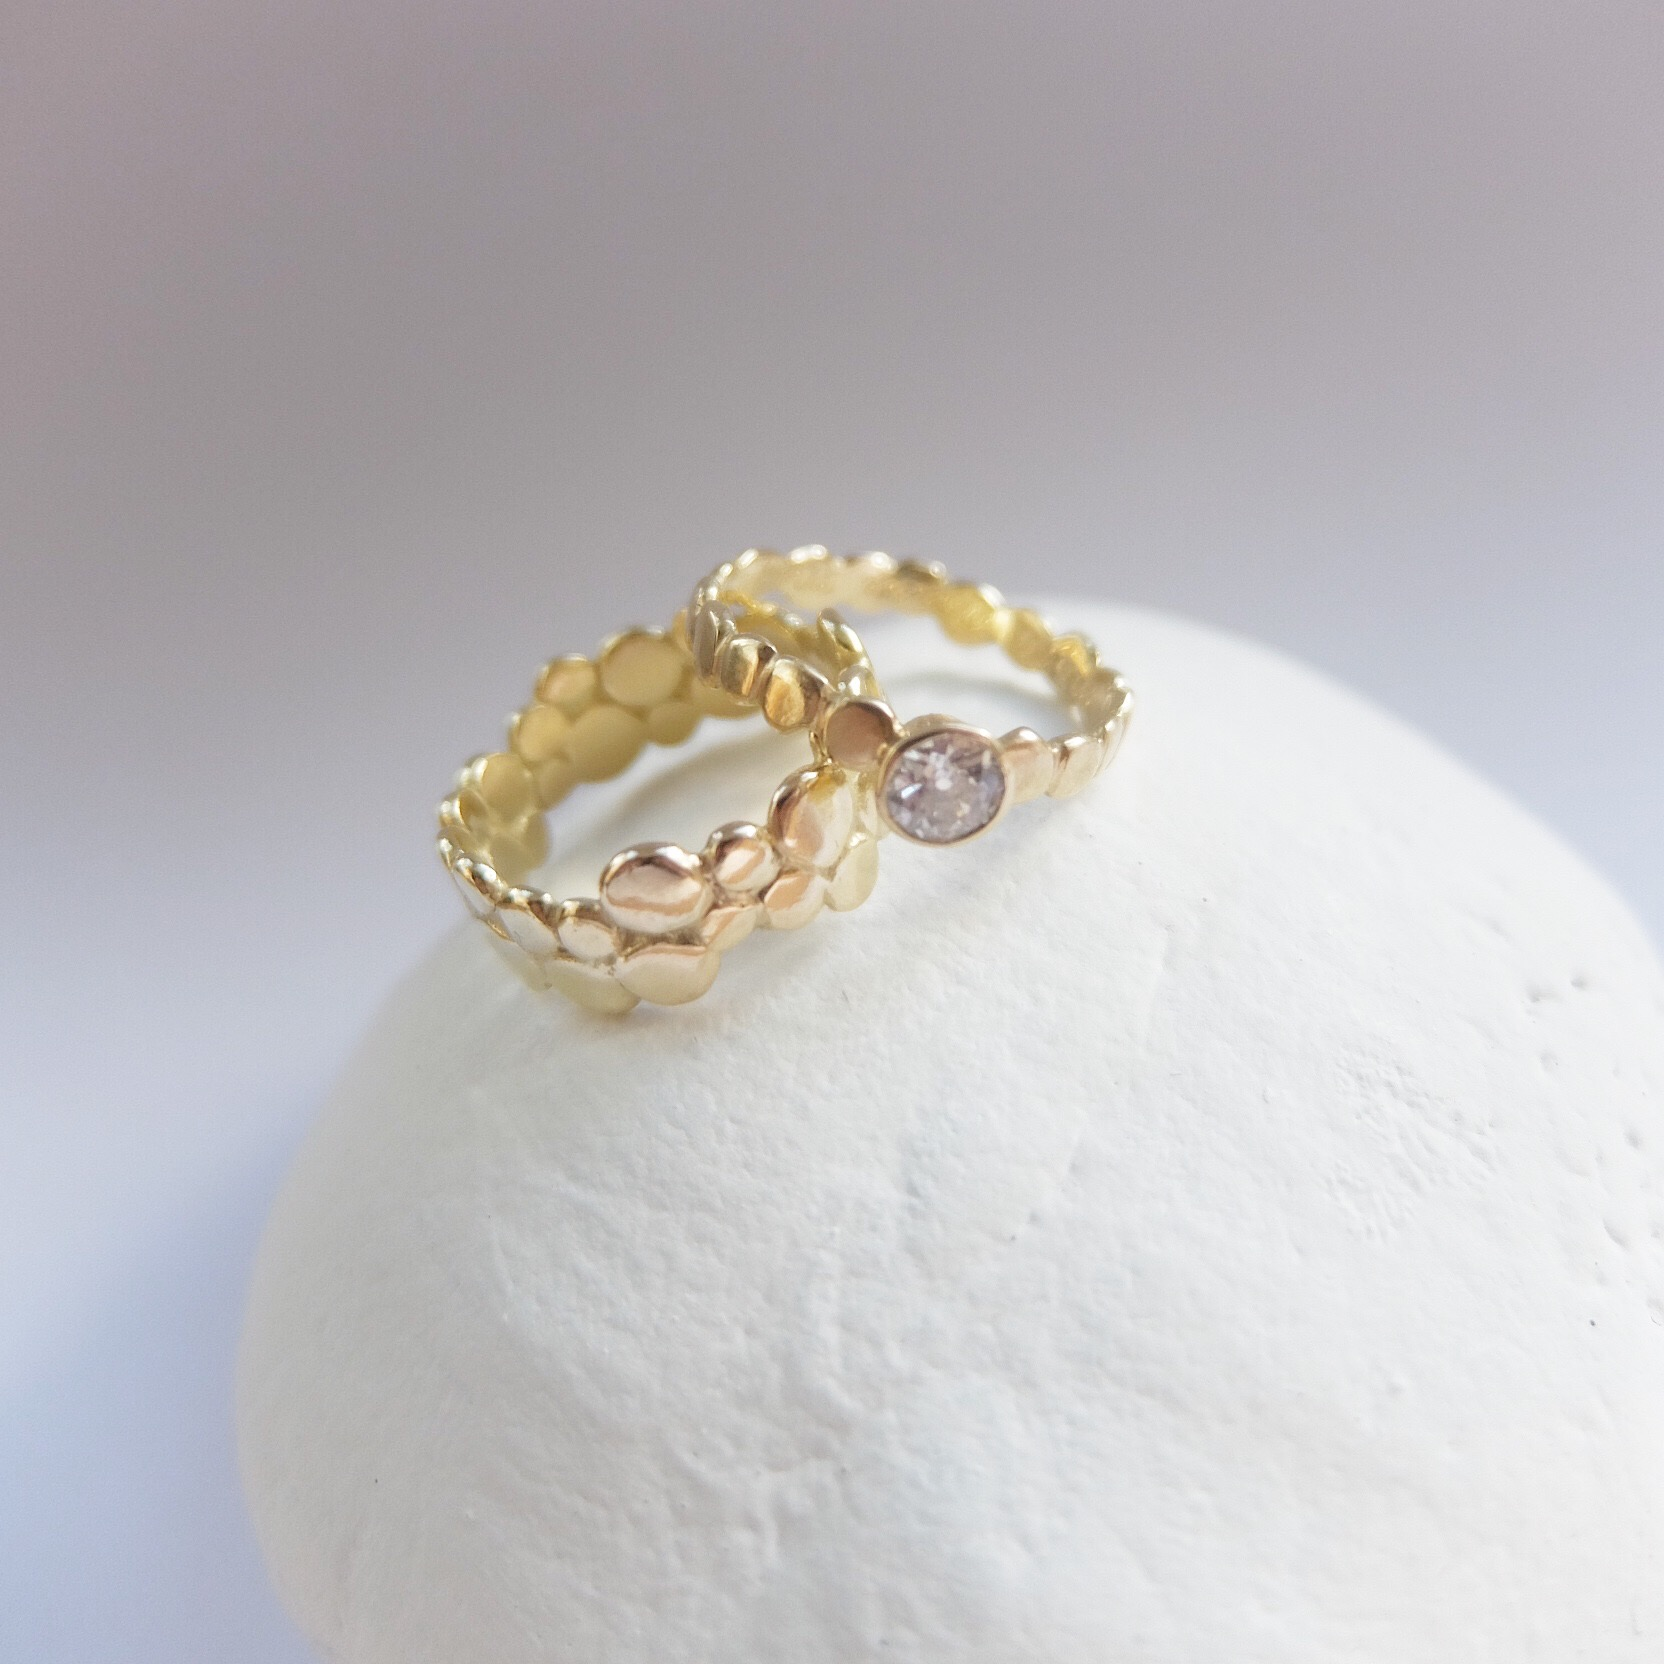 alternative wedding and engagement rings handmade uk jasmine bowden diamond pebble band organic modern 18ct gold craft designer jasmine bowden uk exeter devon cornwall .jpg